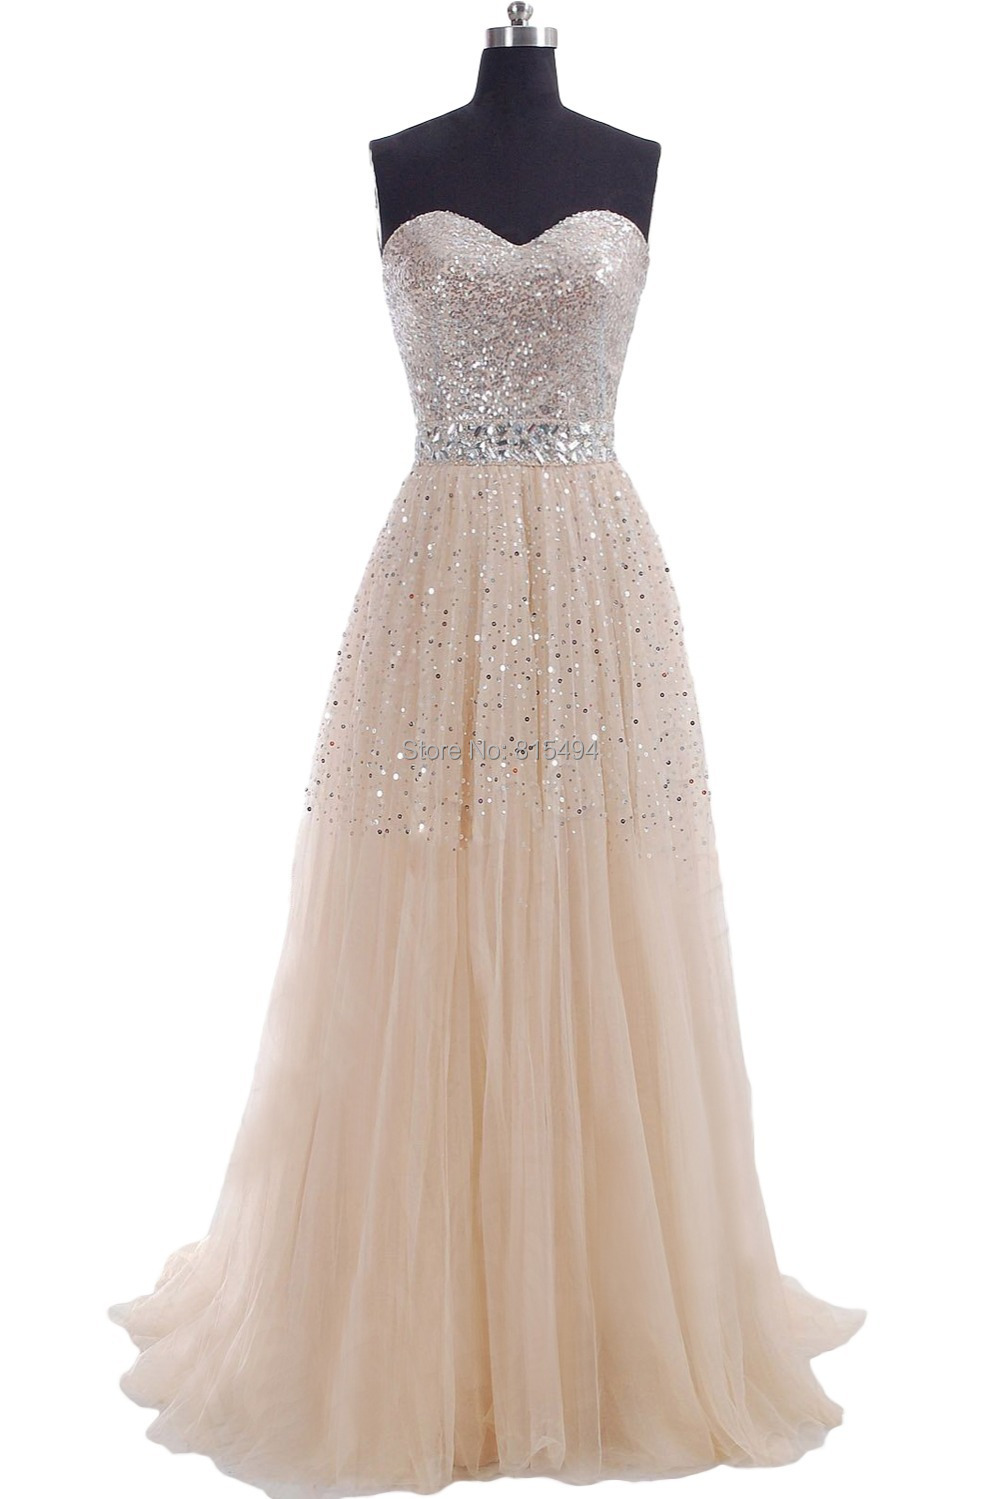 2015 sweetheart a line champagne formal prom dress long for Formal long dresses for weddings